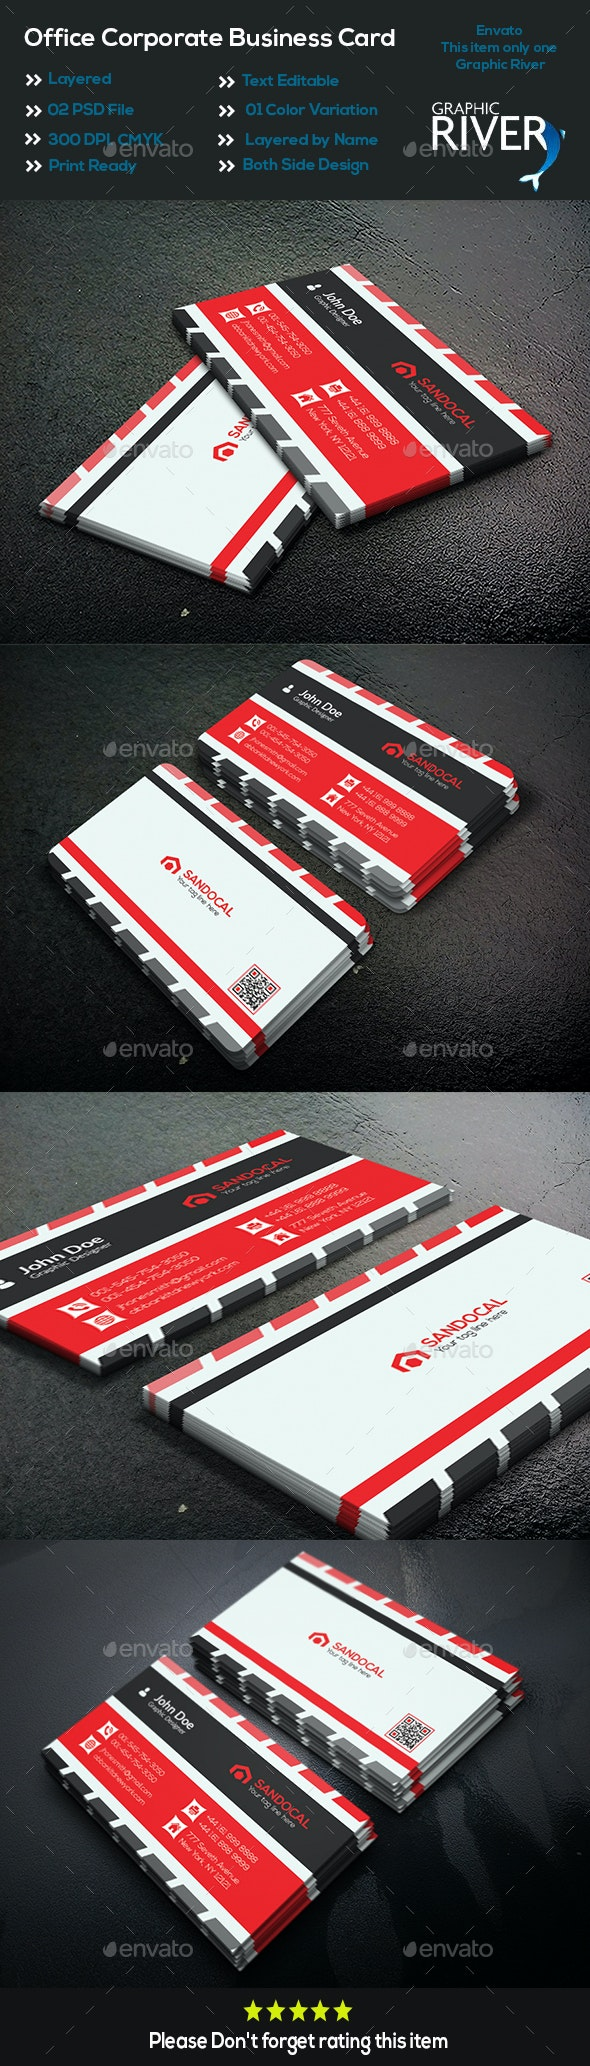 Office Corporate Business Card - Business Cards Print Templates